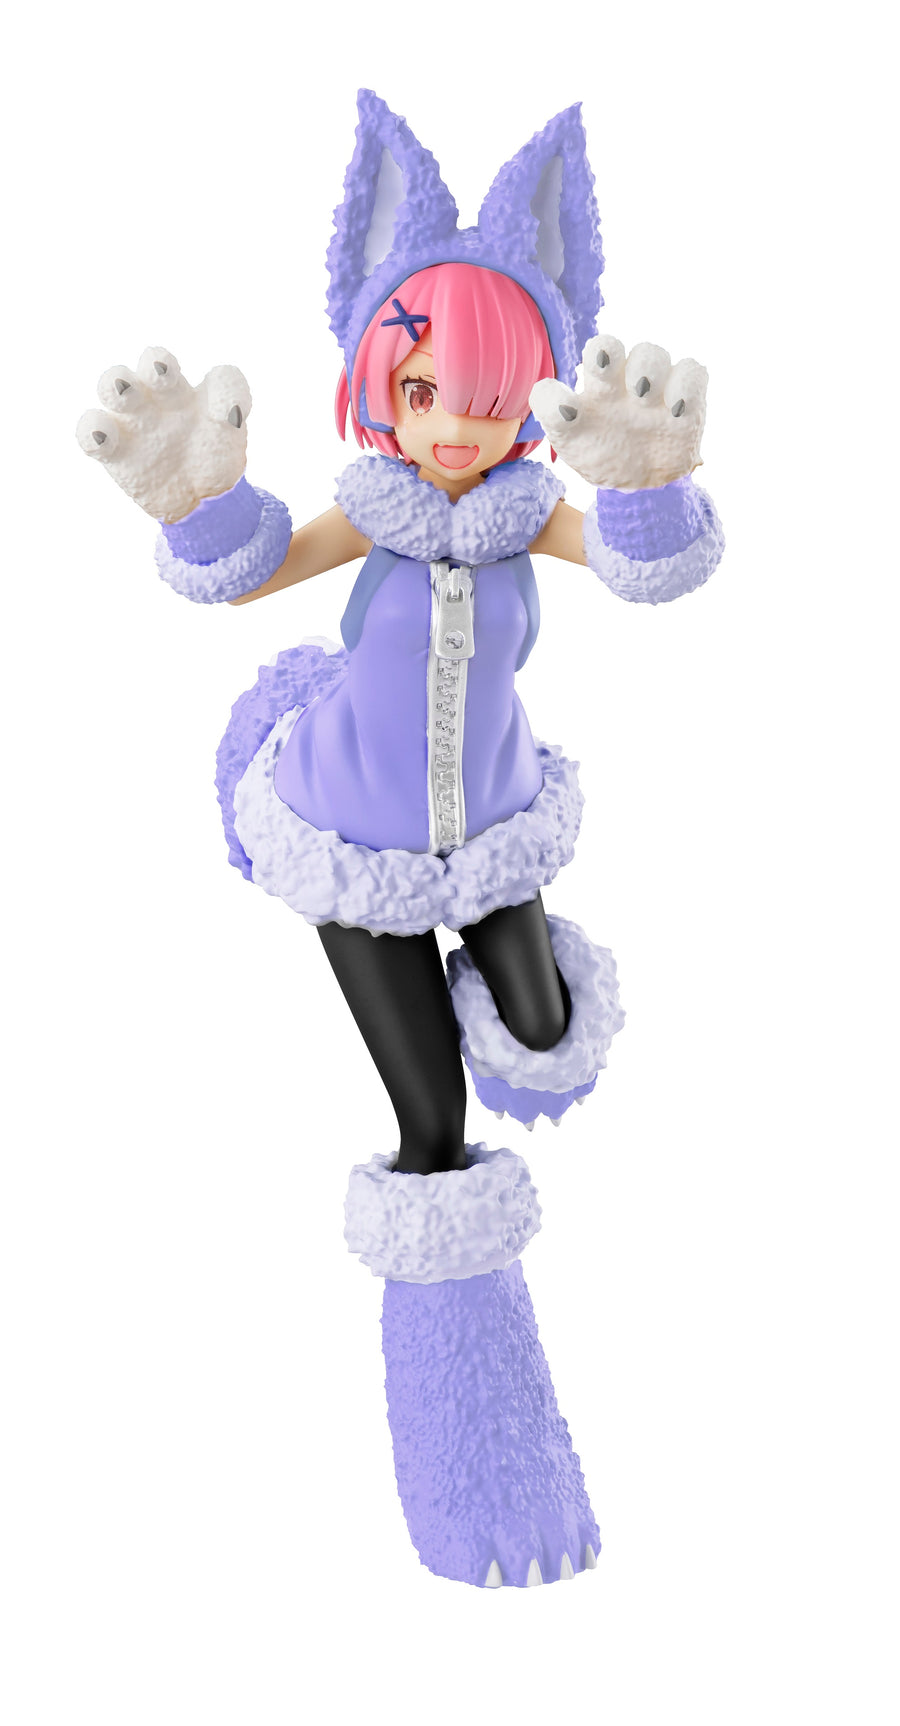 Re:Zero Starting Life in Another World SSS FIGURE - Ram・The Wolf and the Seven